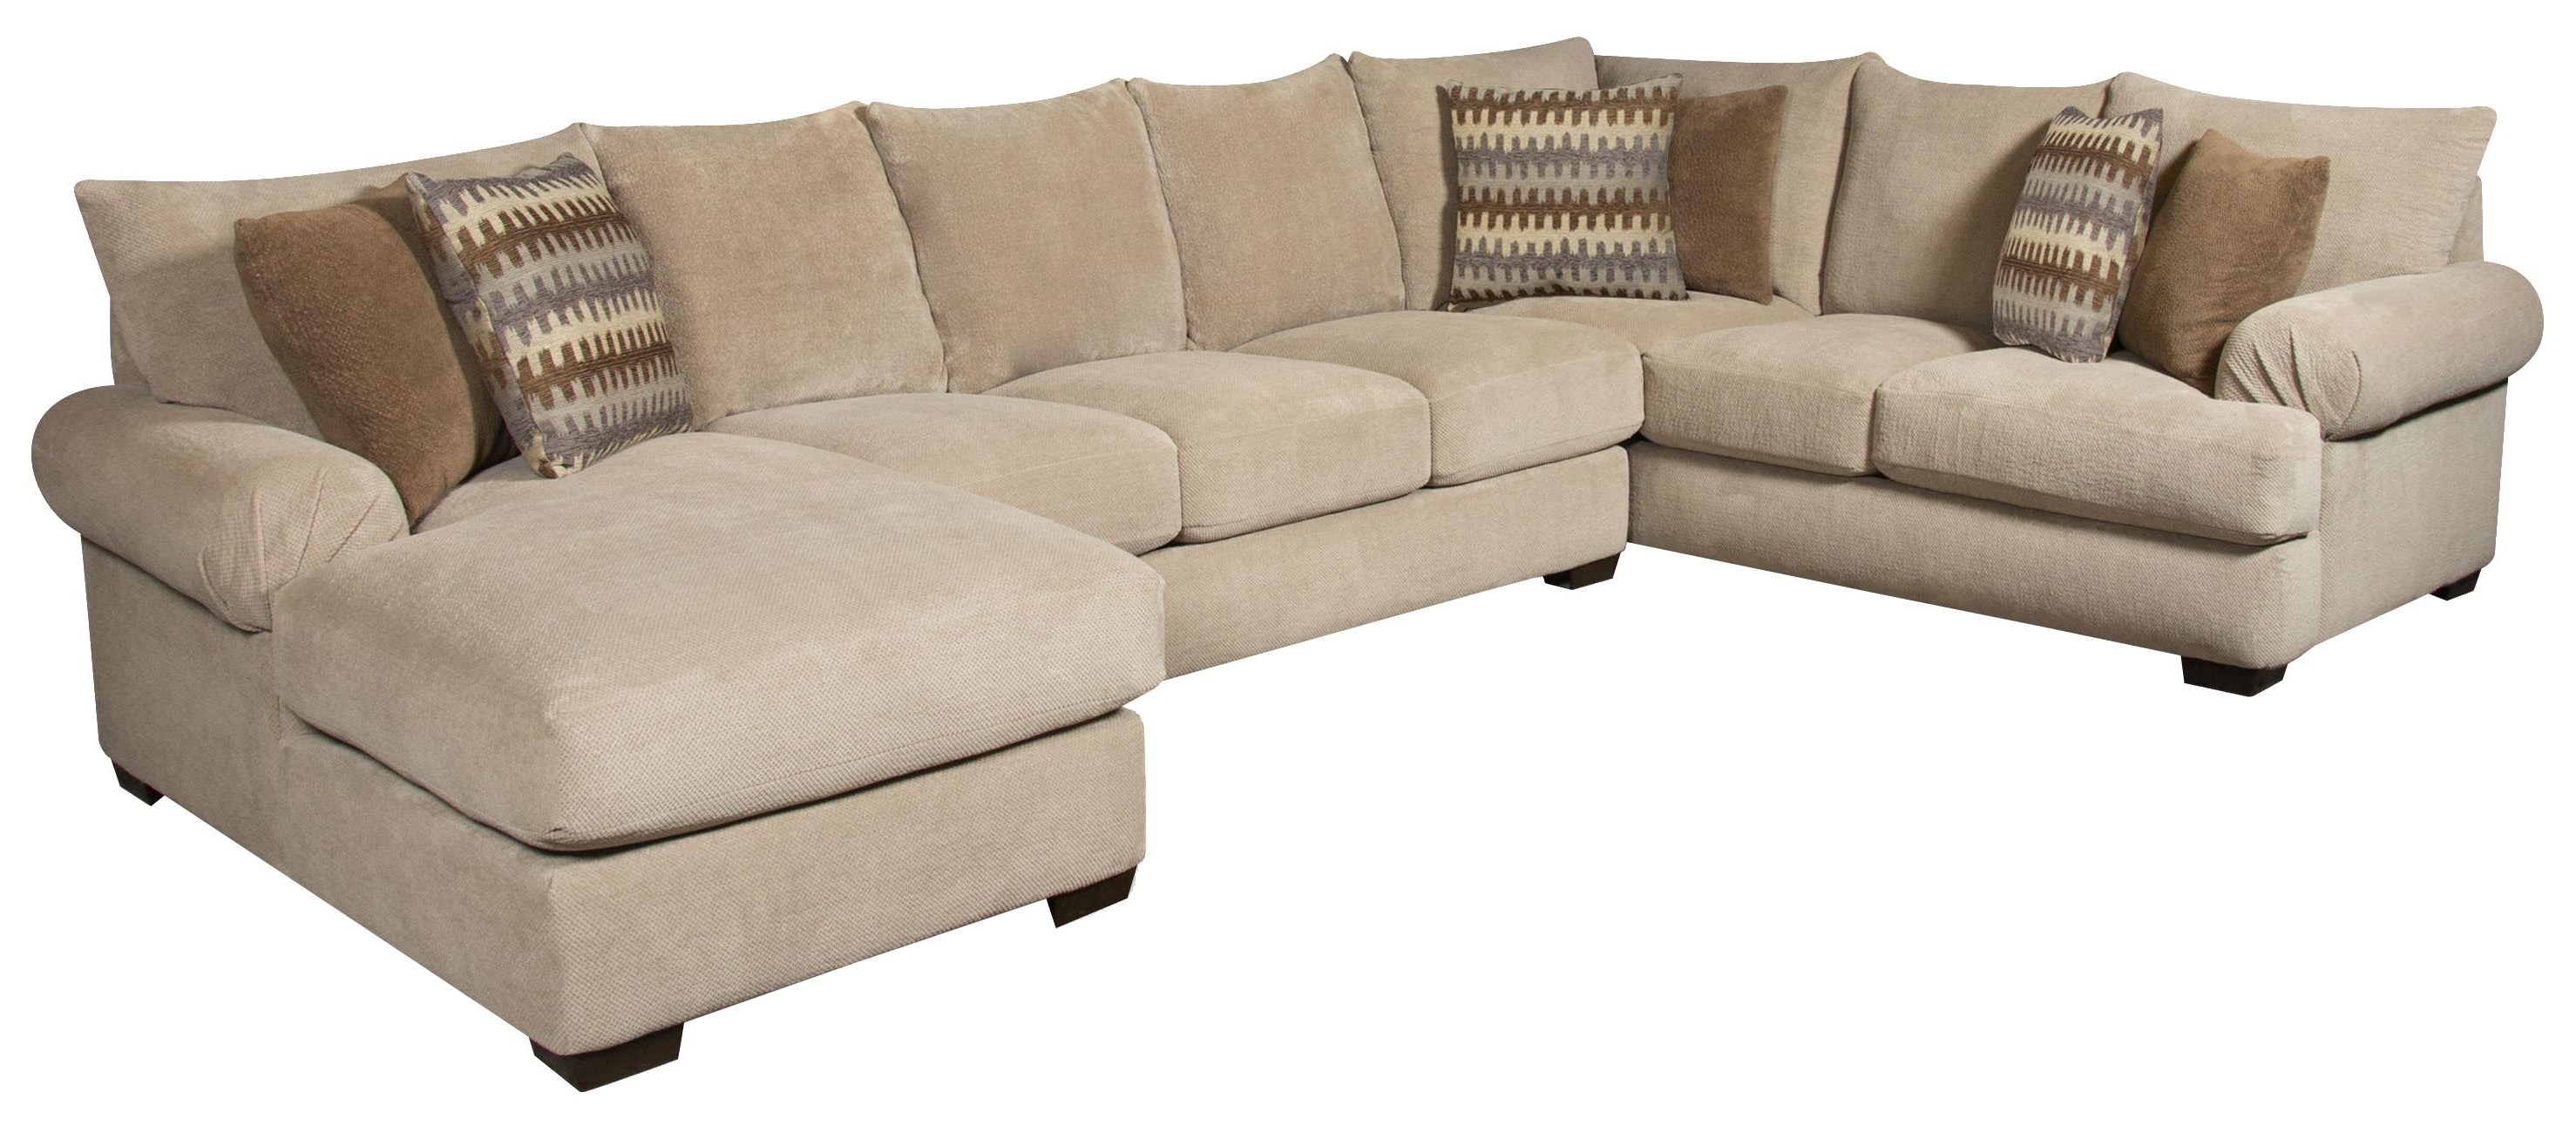 Favorite Jacksonville Nc Sectional Sofas Intended For Corinthian 61A0 Sectional Sofa With Right Side Chaise (View 5 of 20)